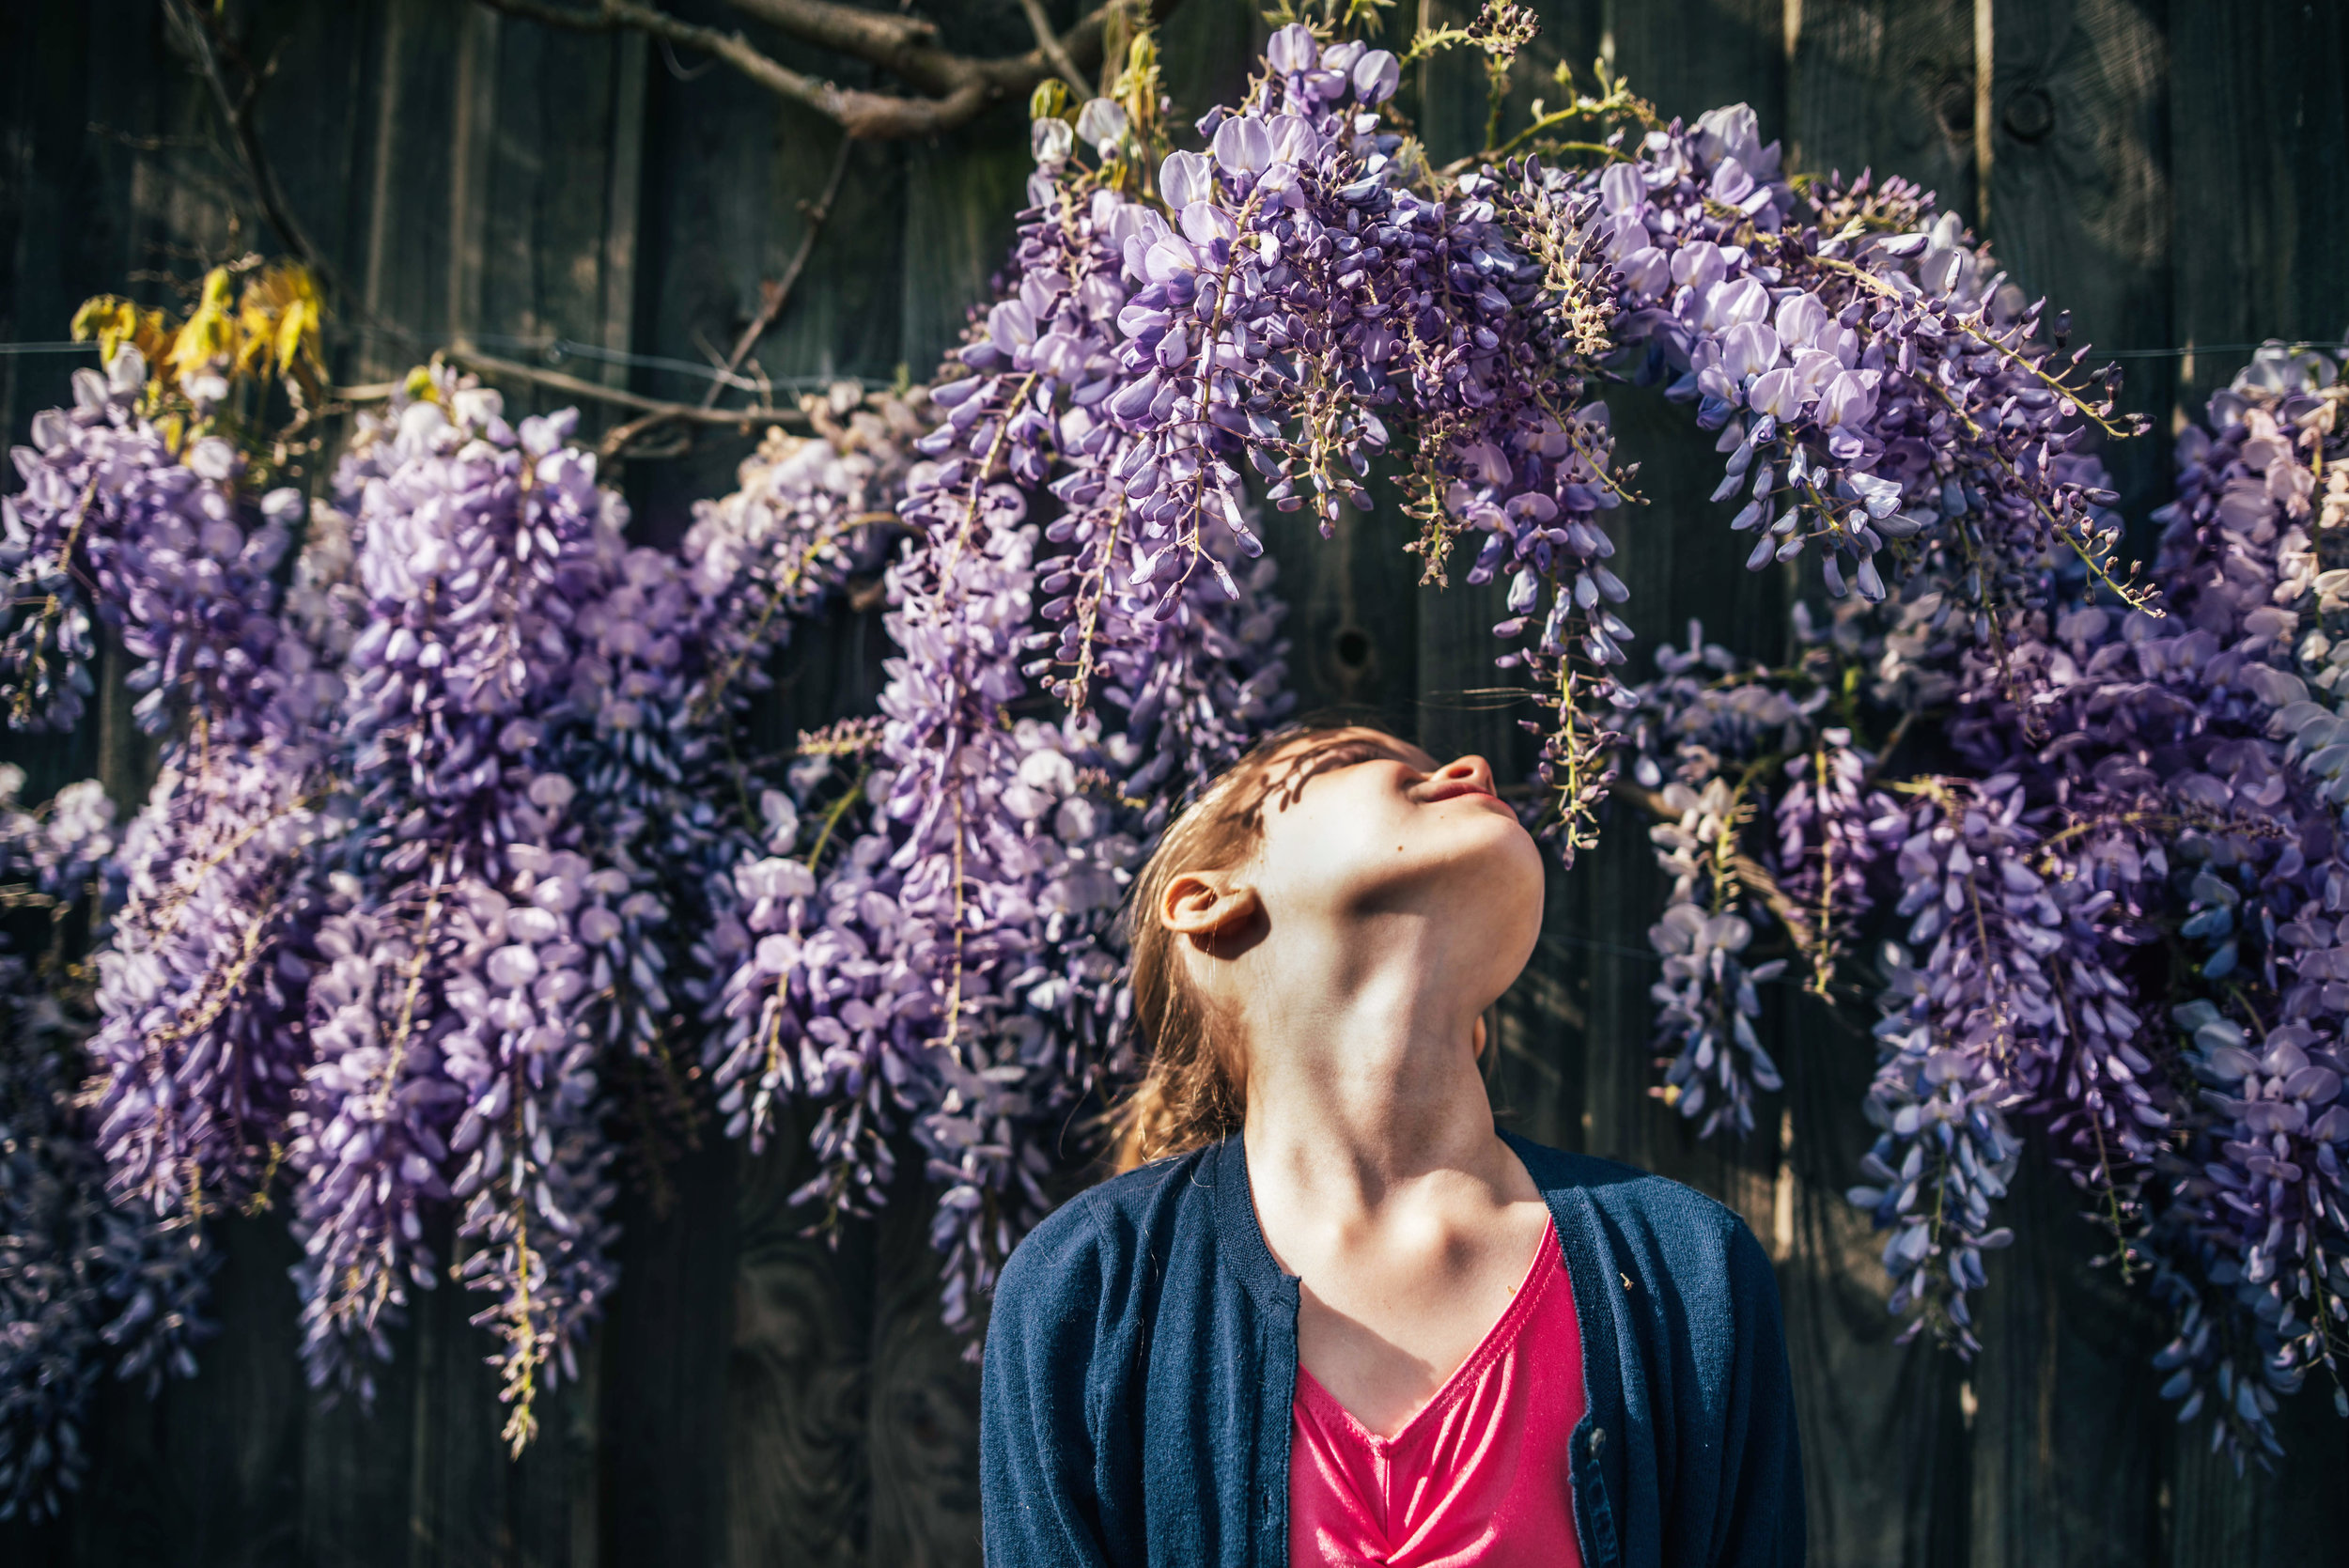 Little girl in Wisteria Essex UK Documentary Lifestyle Portrait Photographer